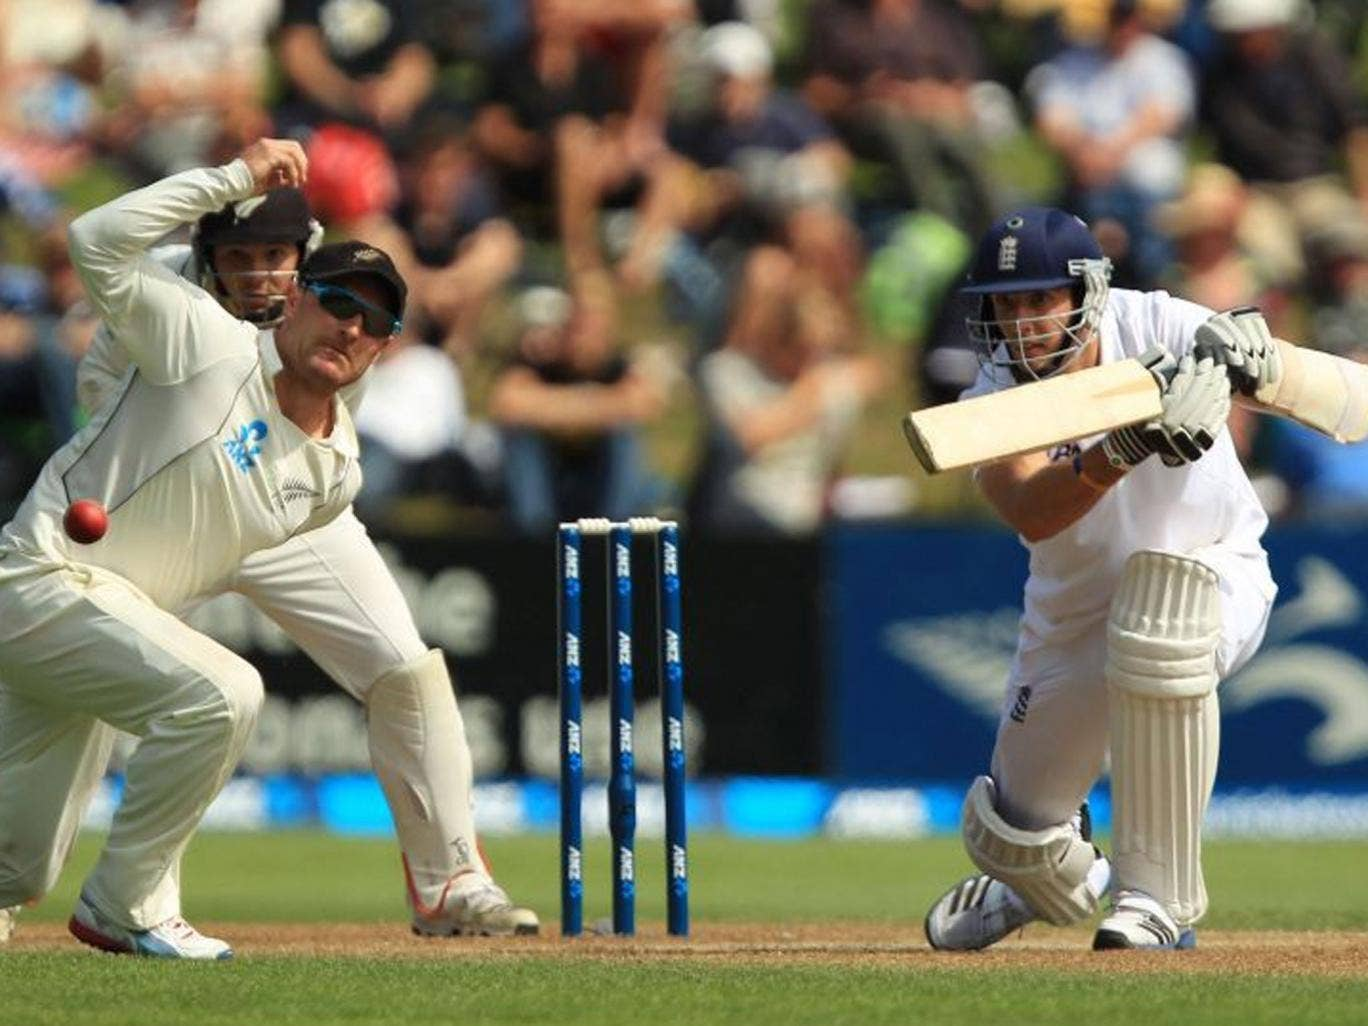 Steve Finn drives the ball past the New Zealand captain, Brendon McCullum, during his marathon innings